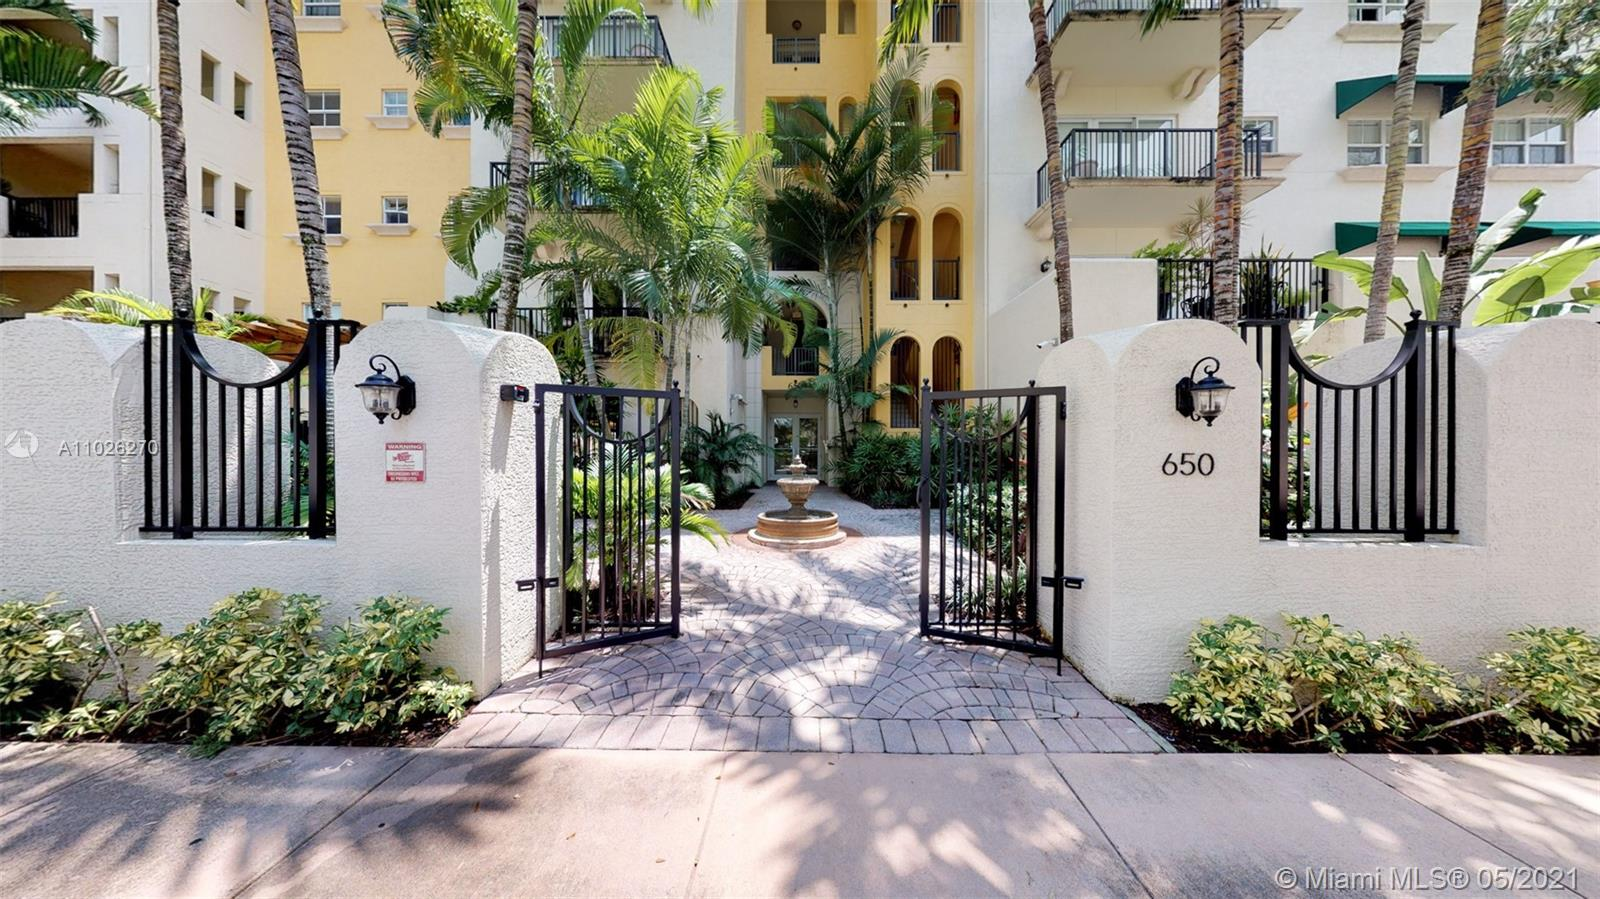 """""""COME TO SEE THIS IDEALLY LUXURIOUS CONDO LOCATED IN THE HEART OF CORAL GABLES. """"AT """"VALENCIA GRANDE"""" TWO BLOCKS FROM MIRACLE MILE SHOPPING & RESTAURANTS, ENJOY THE BENEFITS OF CONDO LIVING AT THIS PRIVATE, PEACEFUL AND PERFECT UNIT 3Be, 3Ba, WOOD KITCHEN CABINETRY, TOP OF THE LINE S/S APPLIANCES, WINE COOLER, SEMI PRIVATE ELEVATOR, HARDWOOD FLOORS AND UPGRADED T/OUT, IS THE PERFECT PACKAGE WITH ALL THE EXTRAS INCLUDED. VERY EASY TO SHOW, GO TO SHOWING TIME, DELAY MAY MEAN DISAPPOINTMENT. CLA TODAY !!!"""